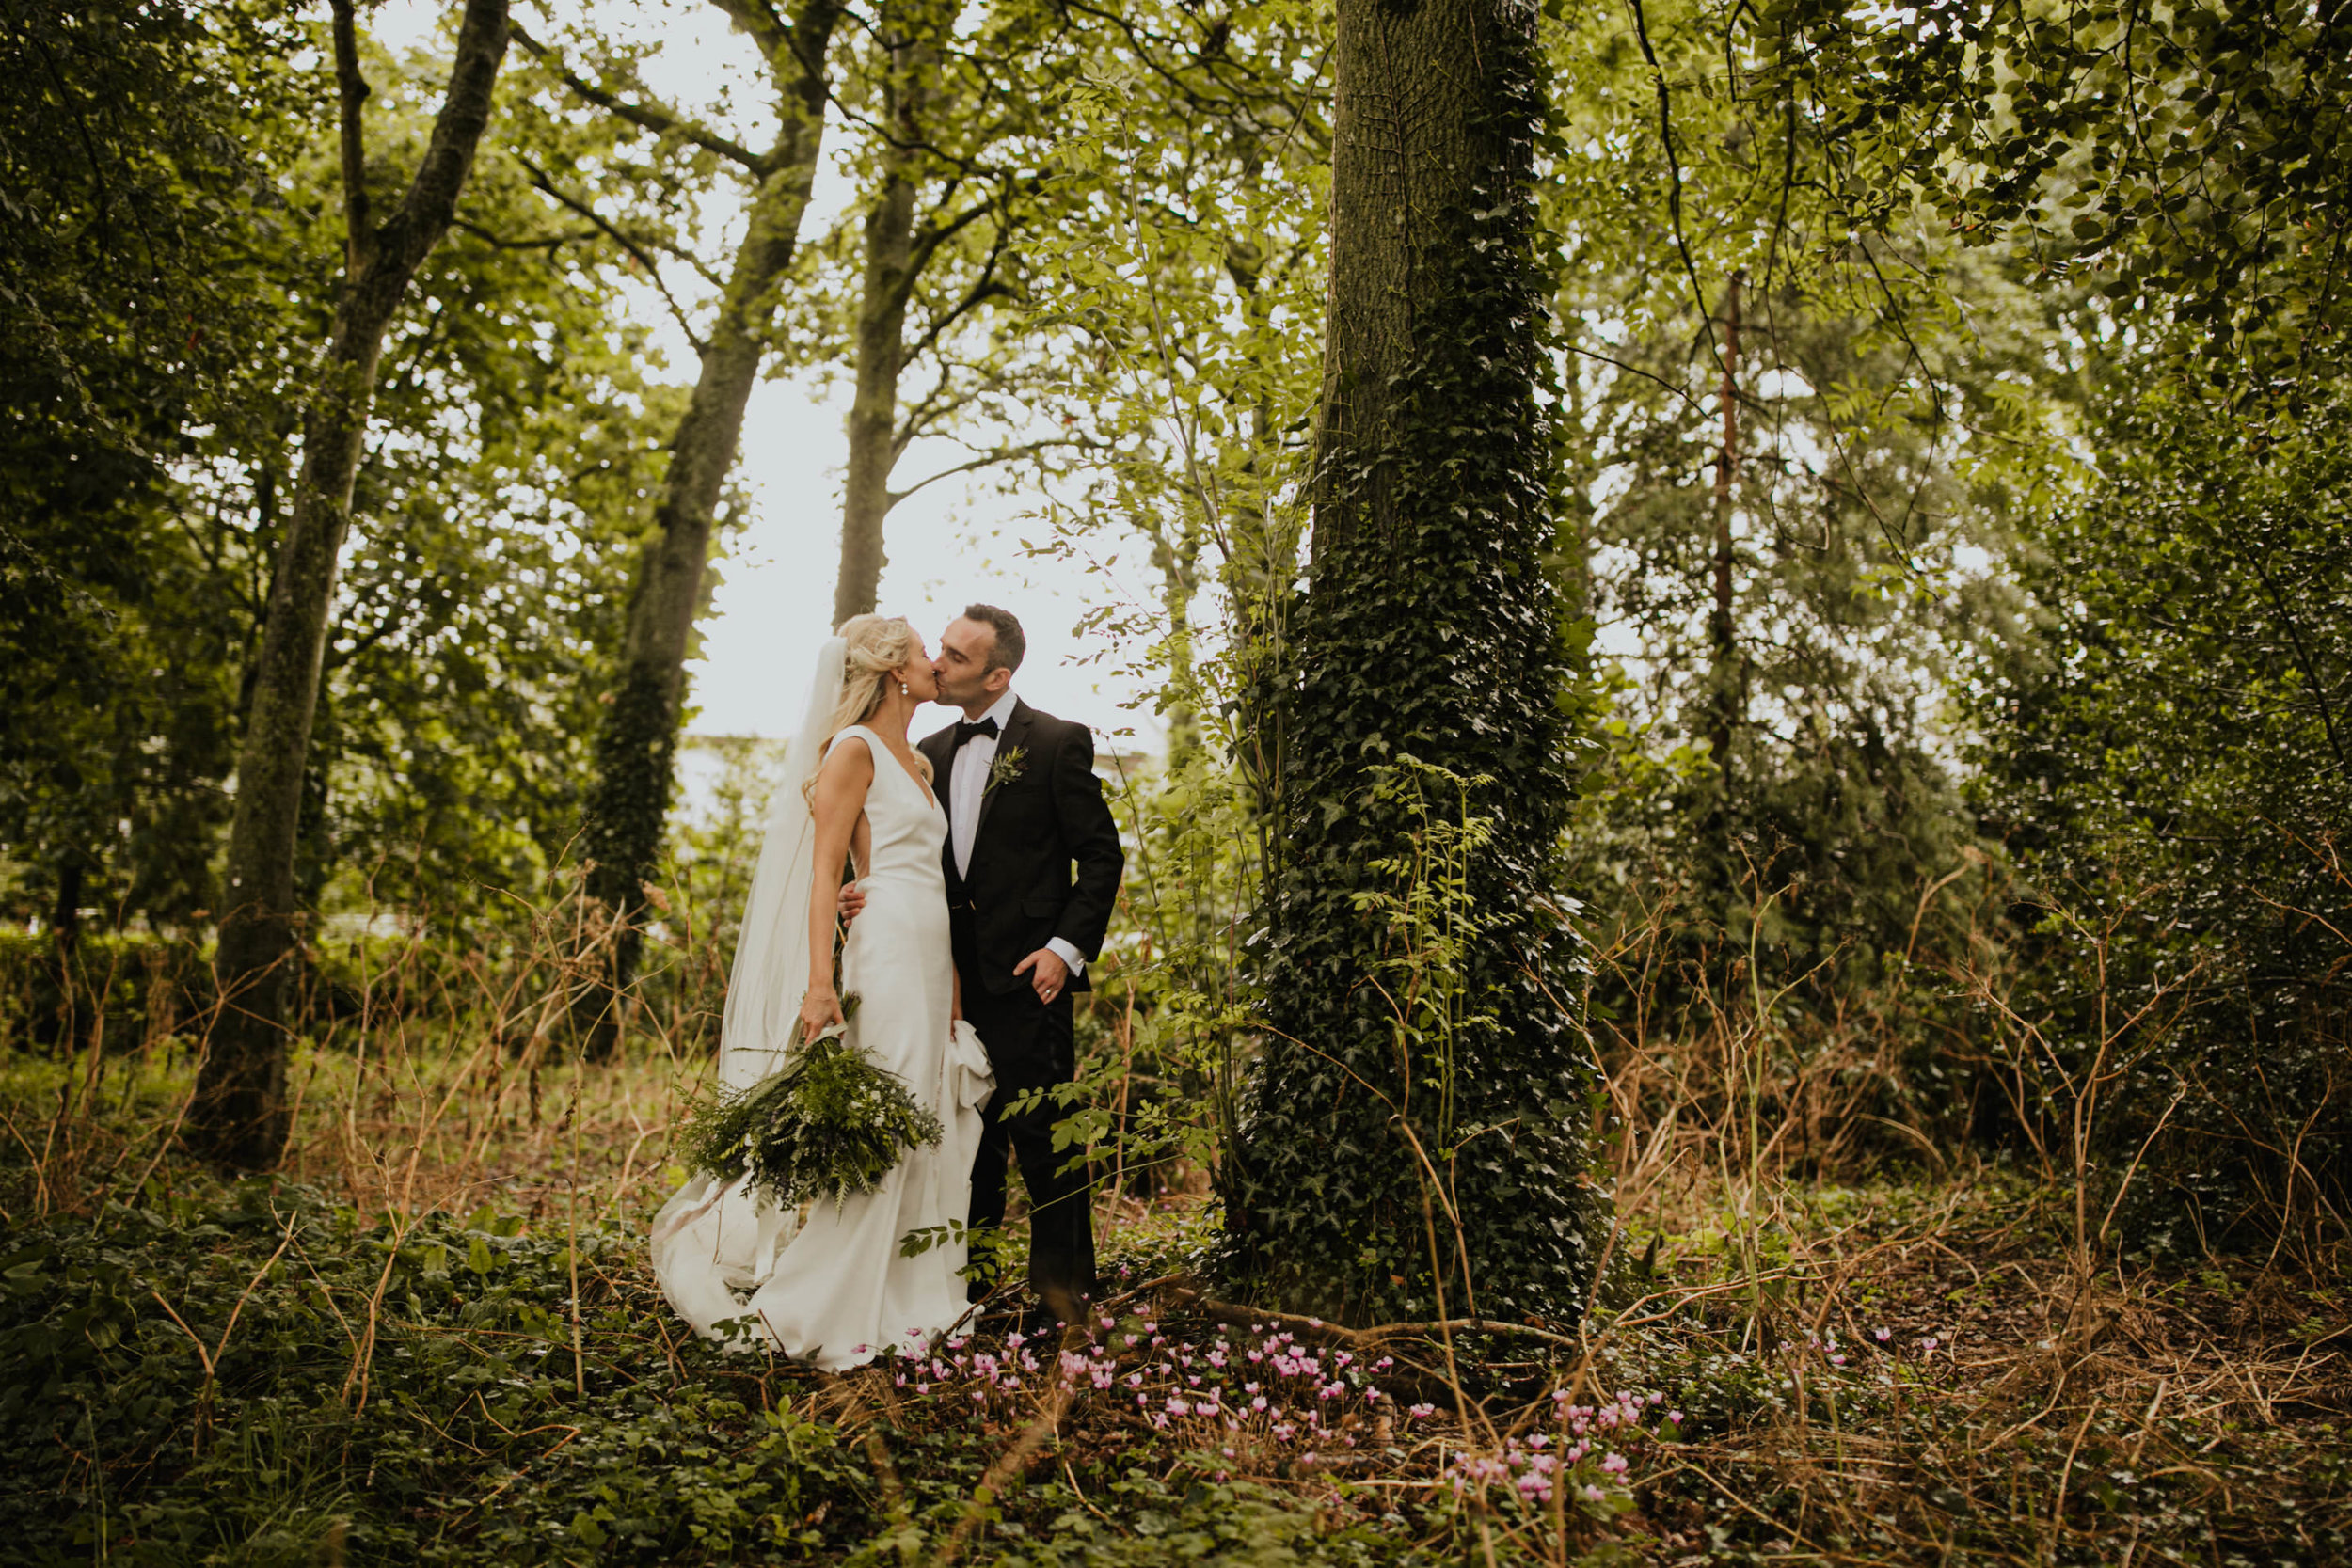 a+n_castle_durrow_wedding_photographer_livia_figueiredo_37.jpg